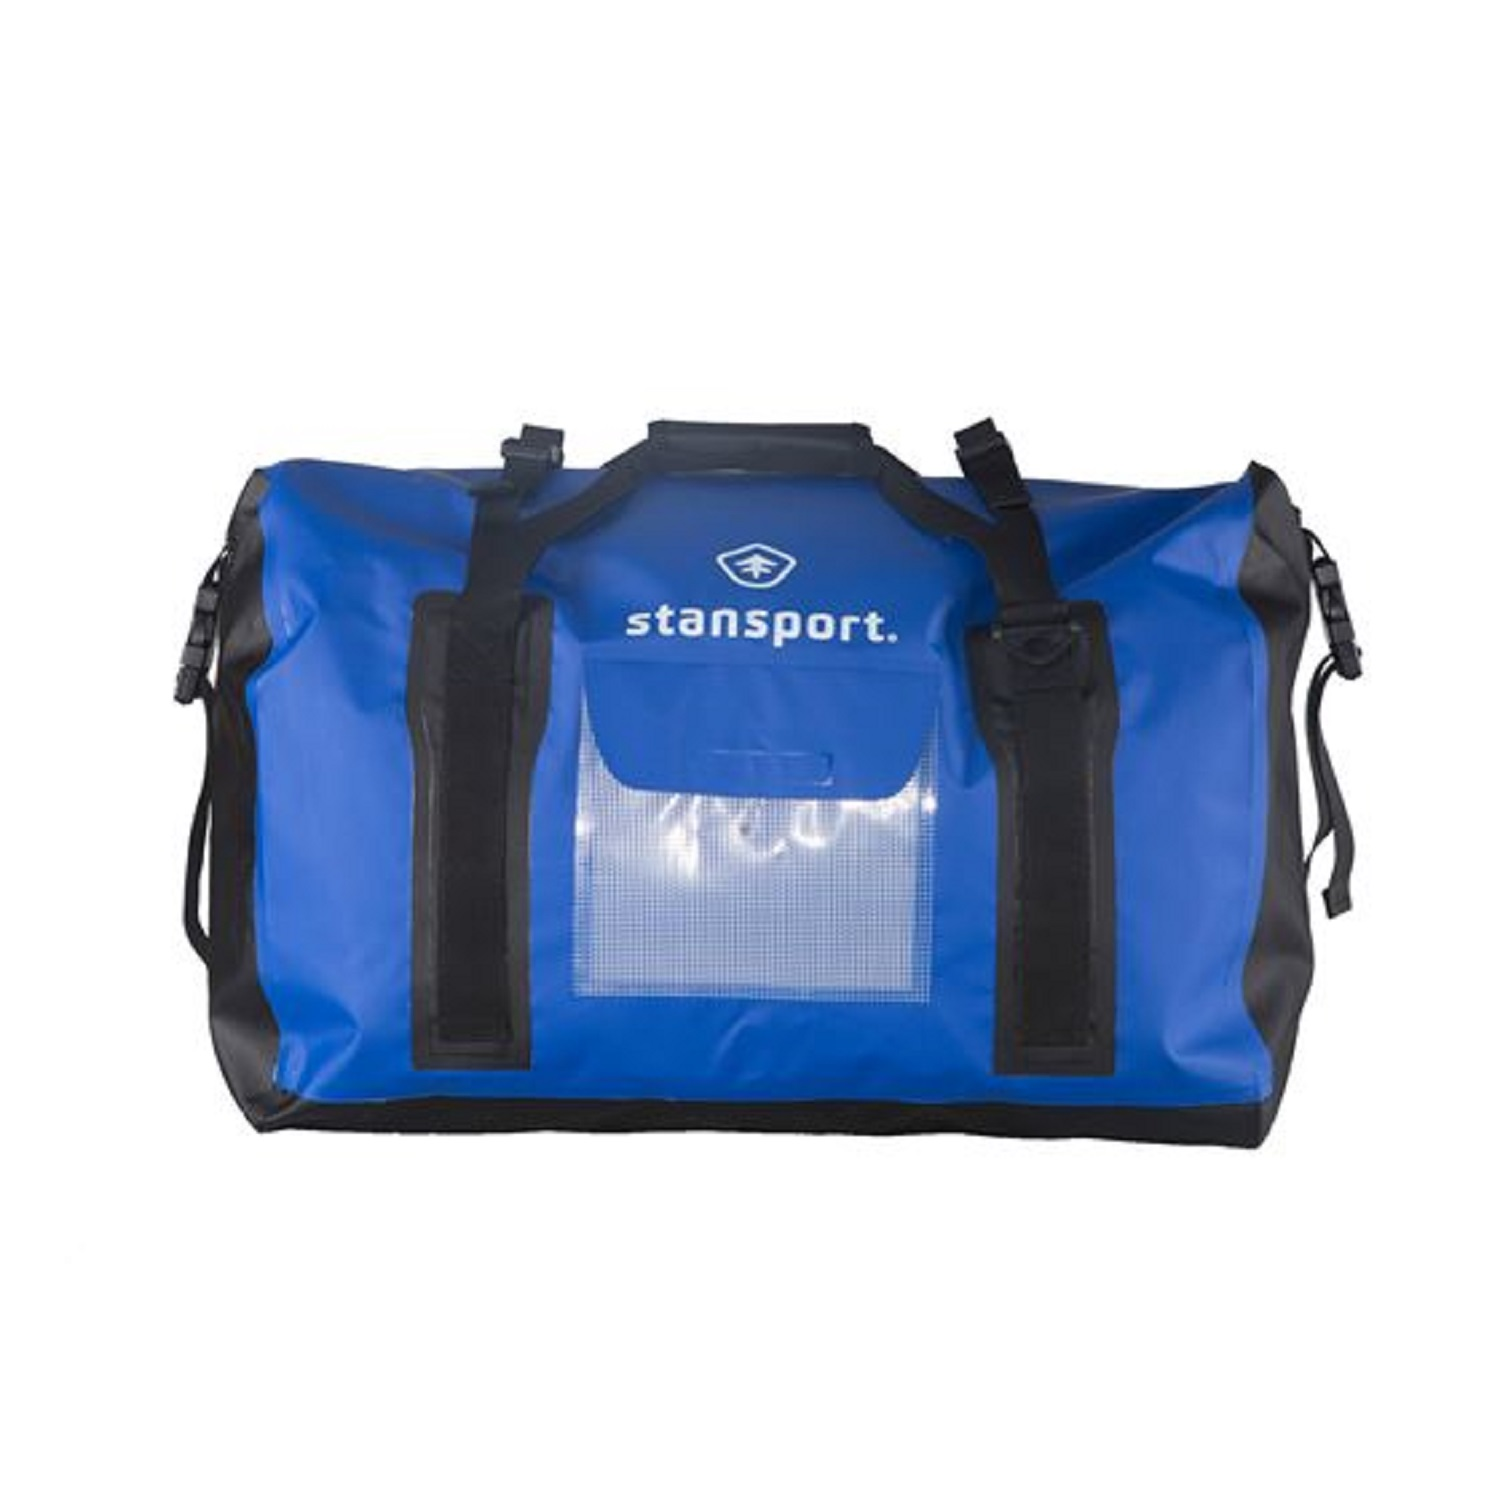 Stansport Waterproof Dry Duffel Bag 65L by Stansport